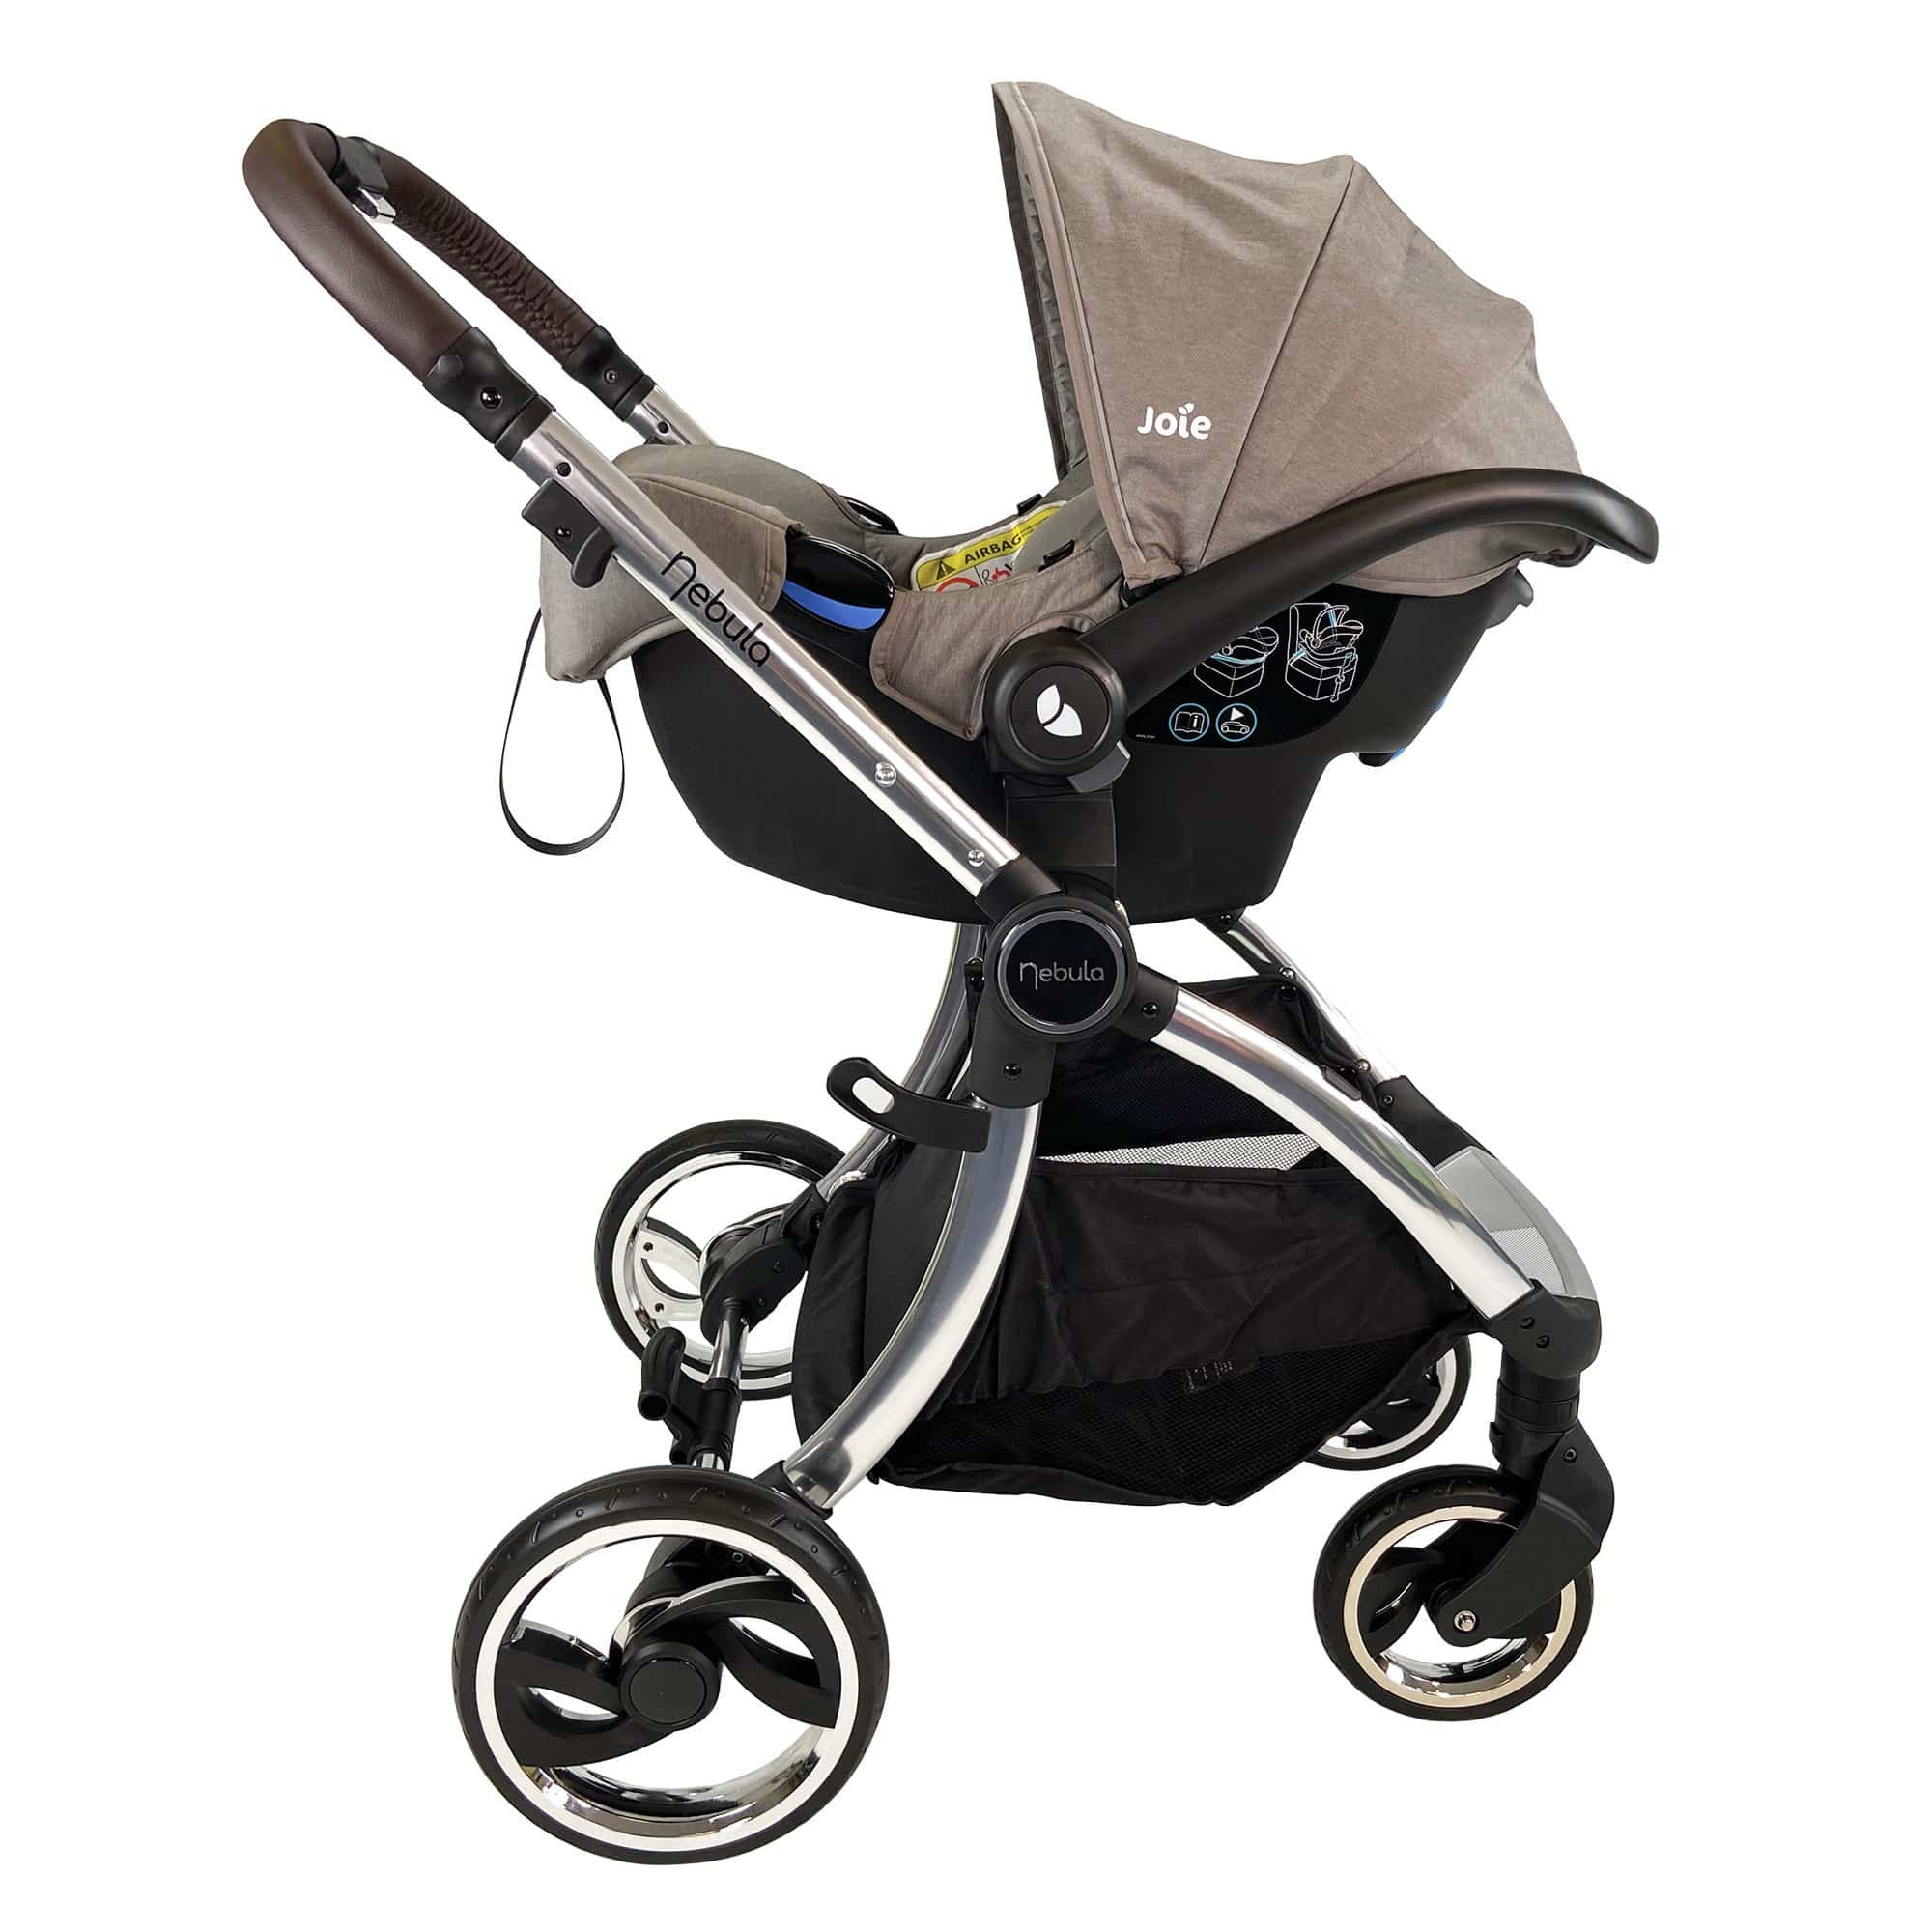 Venture Nebula Signature Edition pushchair with car seat fixed using adapters